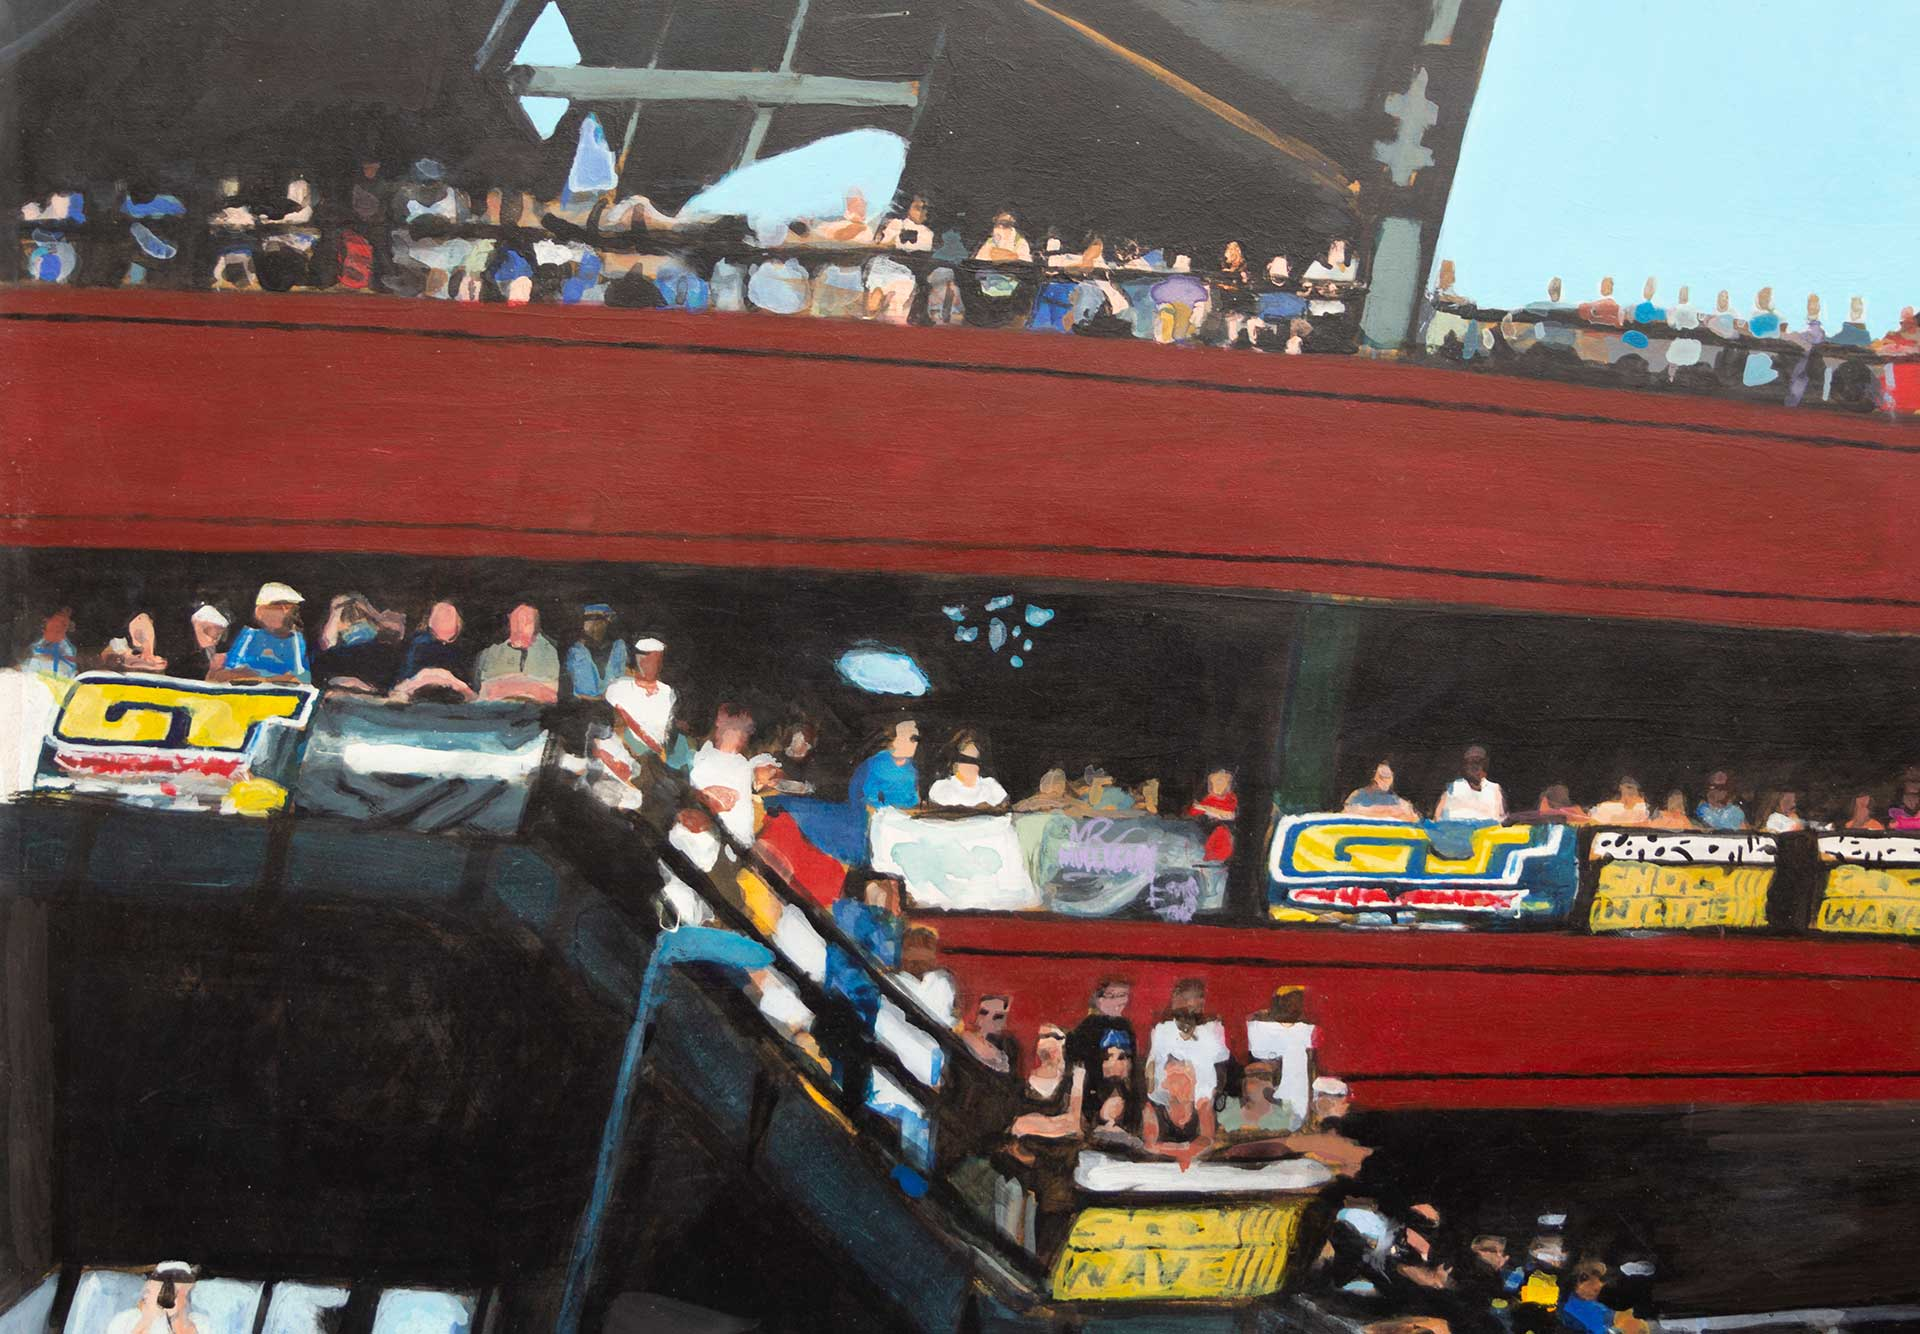 Photorealist painting - King of Dirt - Detail 2